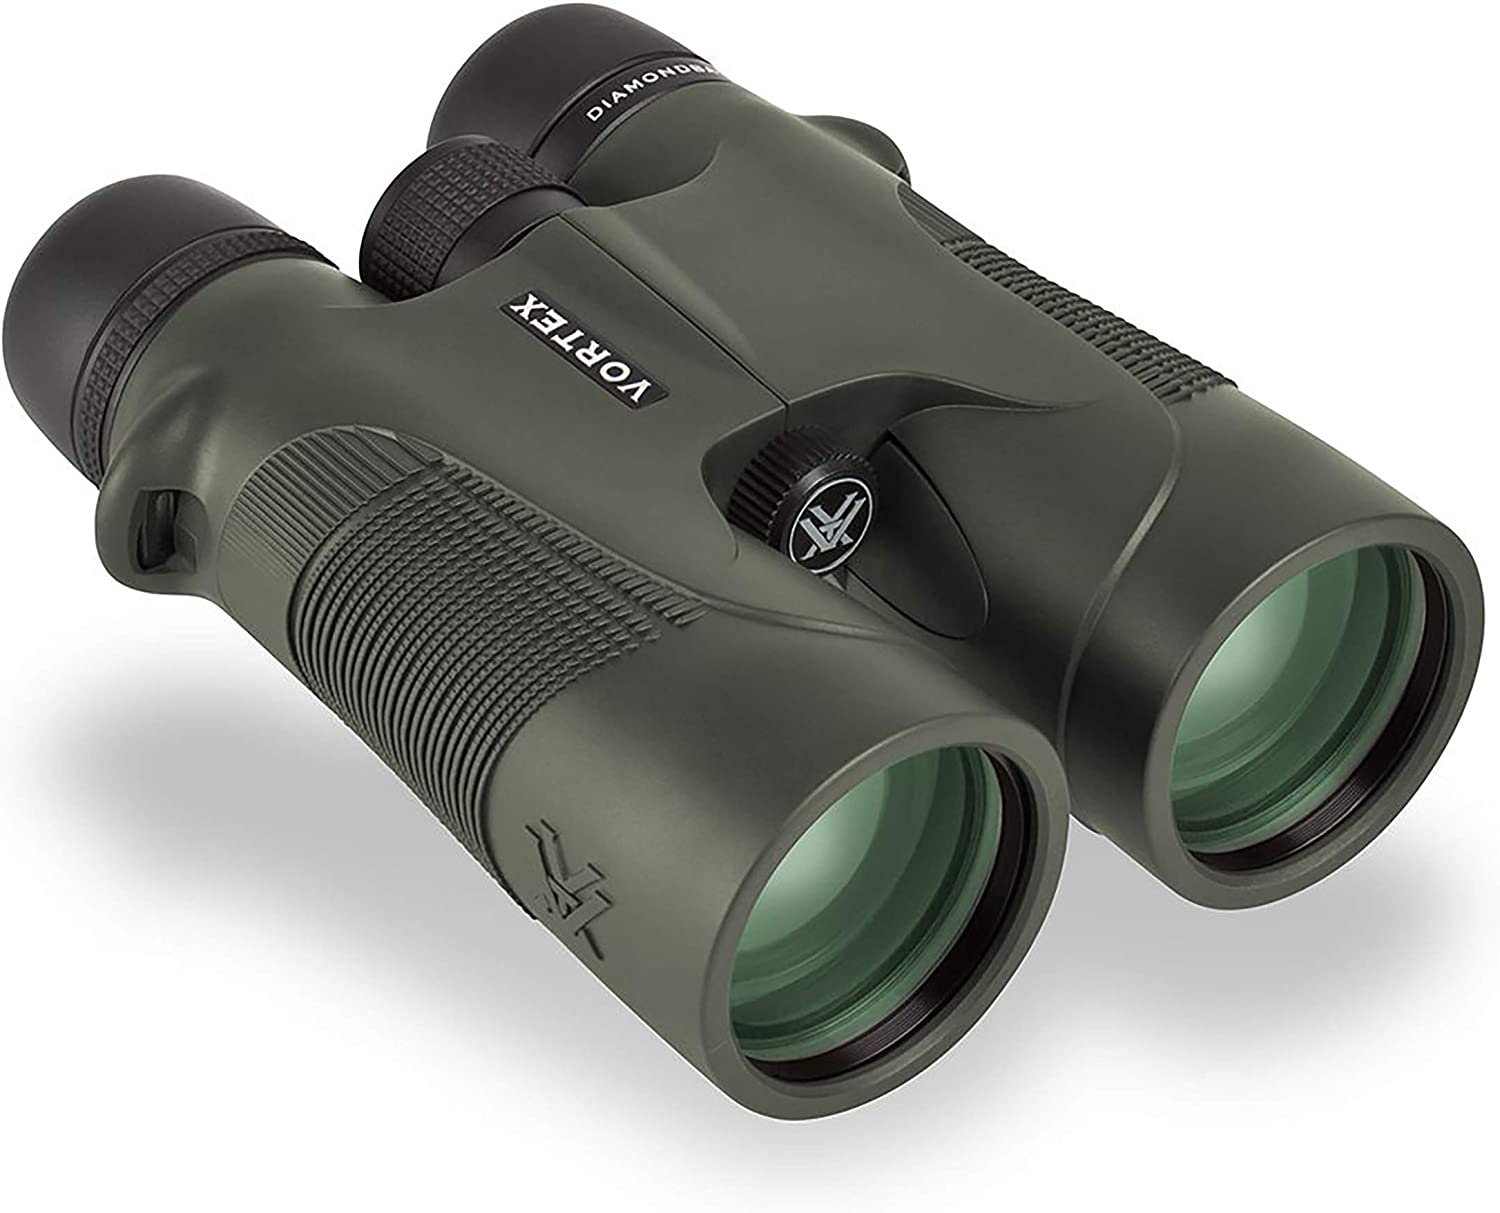 Best Budget Binoculars for Hunting Under $200